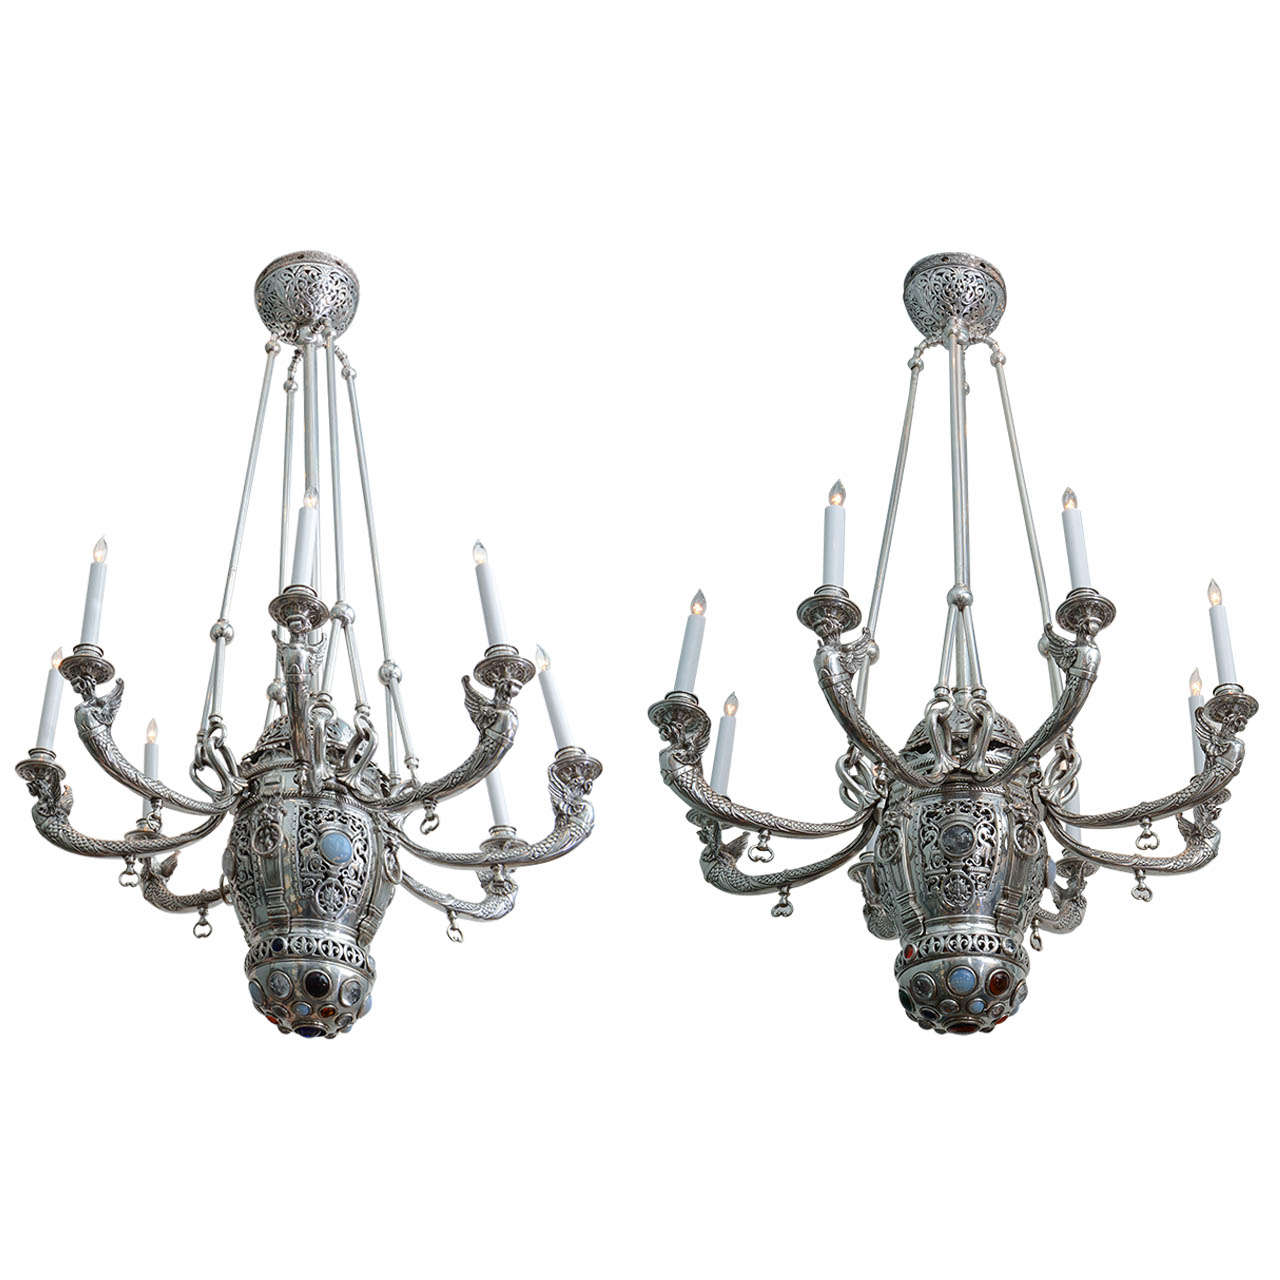 Silver bronze neo gothic moorish chandeliers attributed to tiffany studios at 1stdibs - Moorish chandelier ...